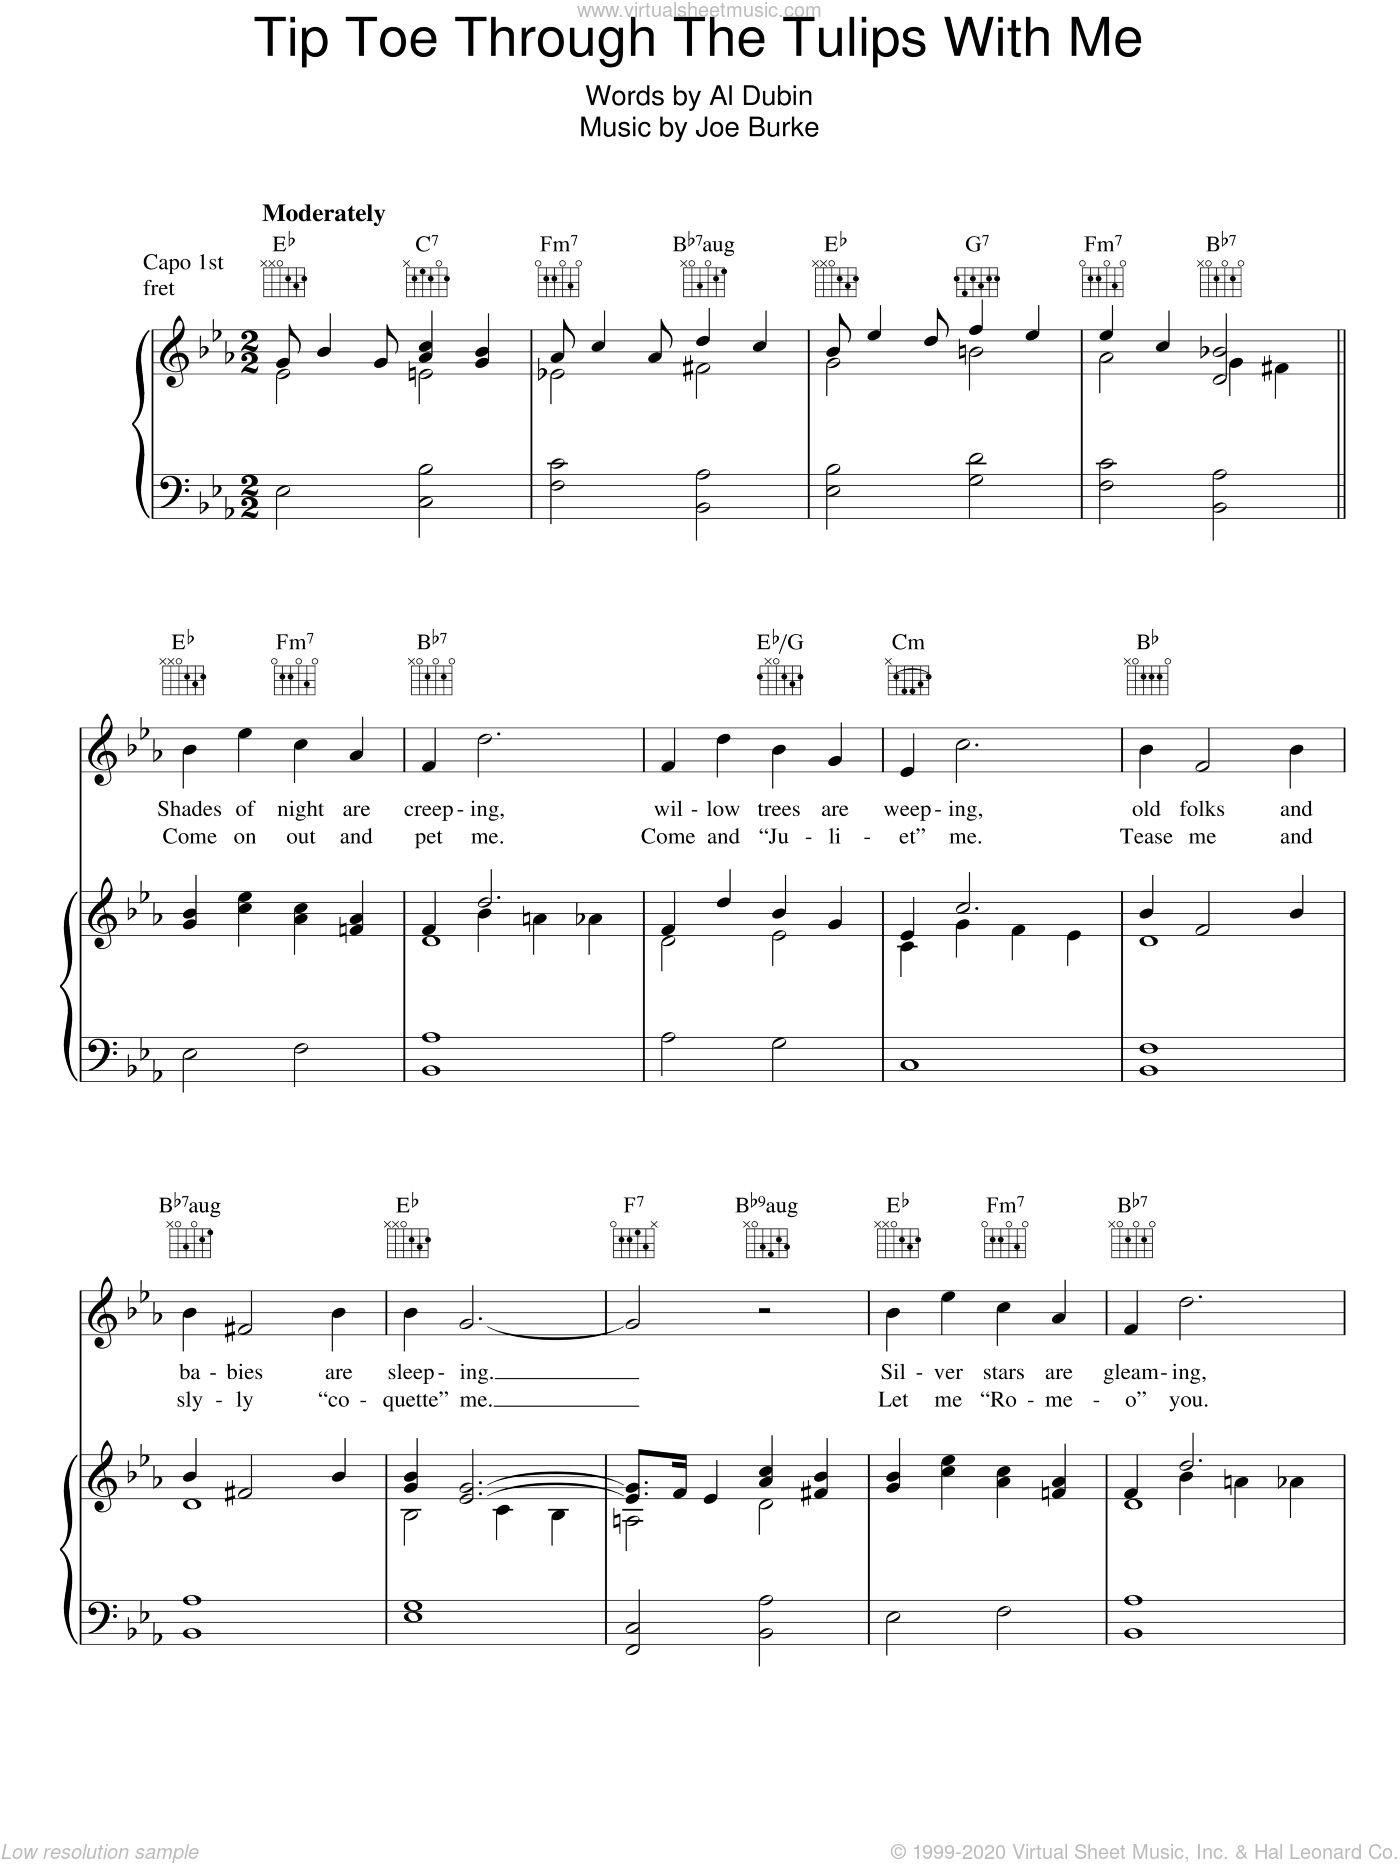 Tip Toe Through The Tulips With Me sheet music for voice, piano or guitar by Joe Burke and Al Dubin, intermediate skill level